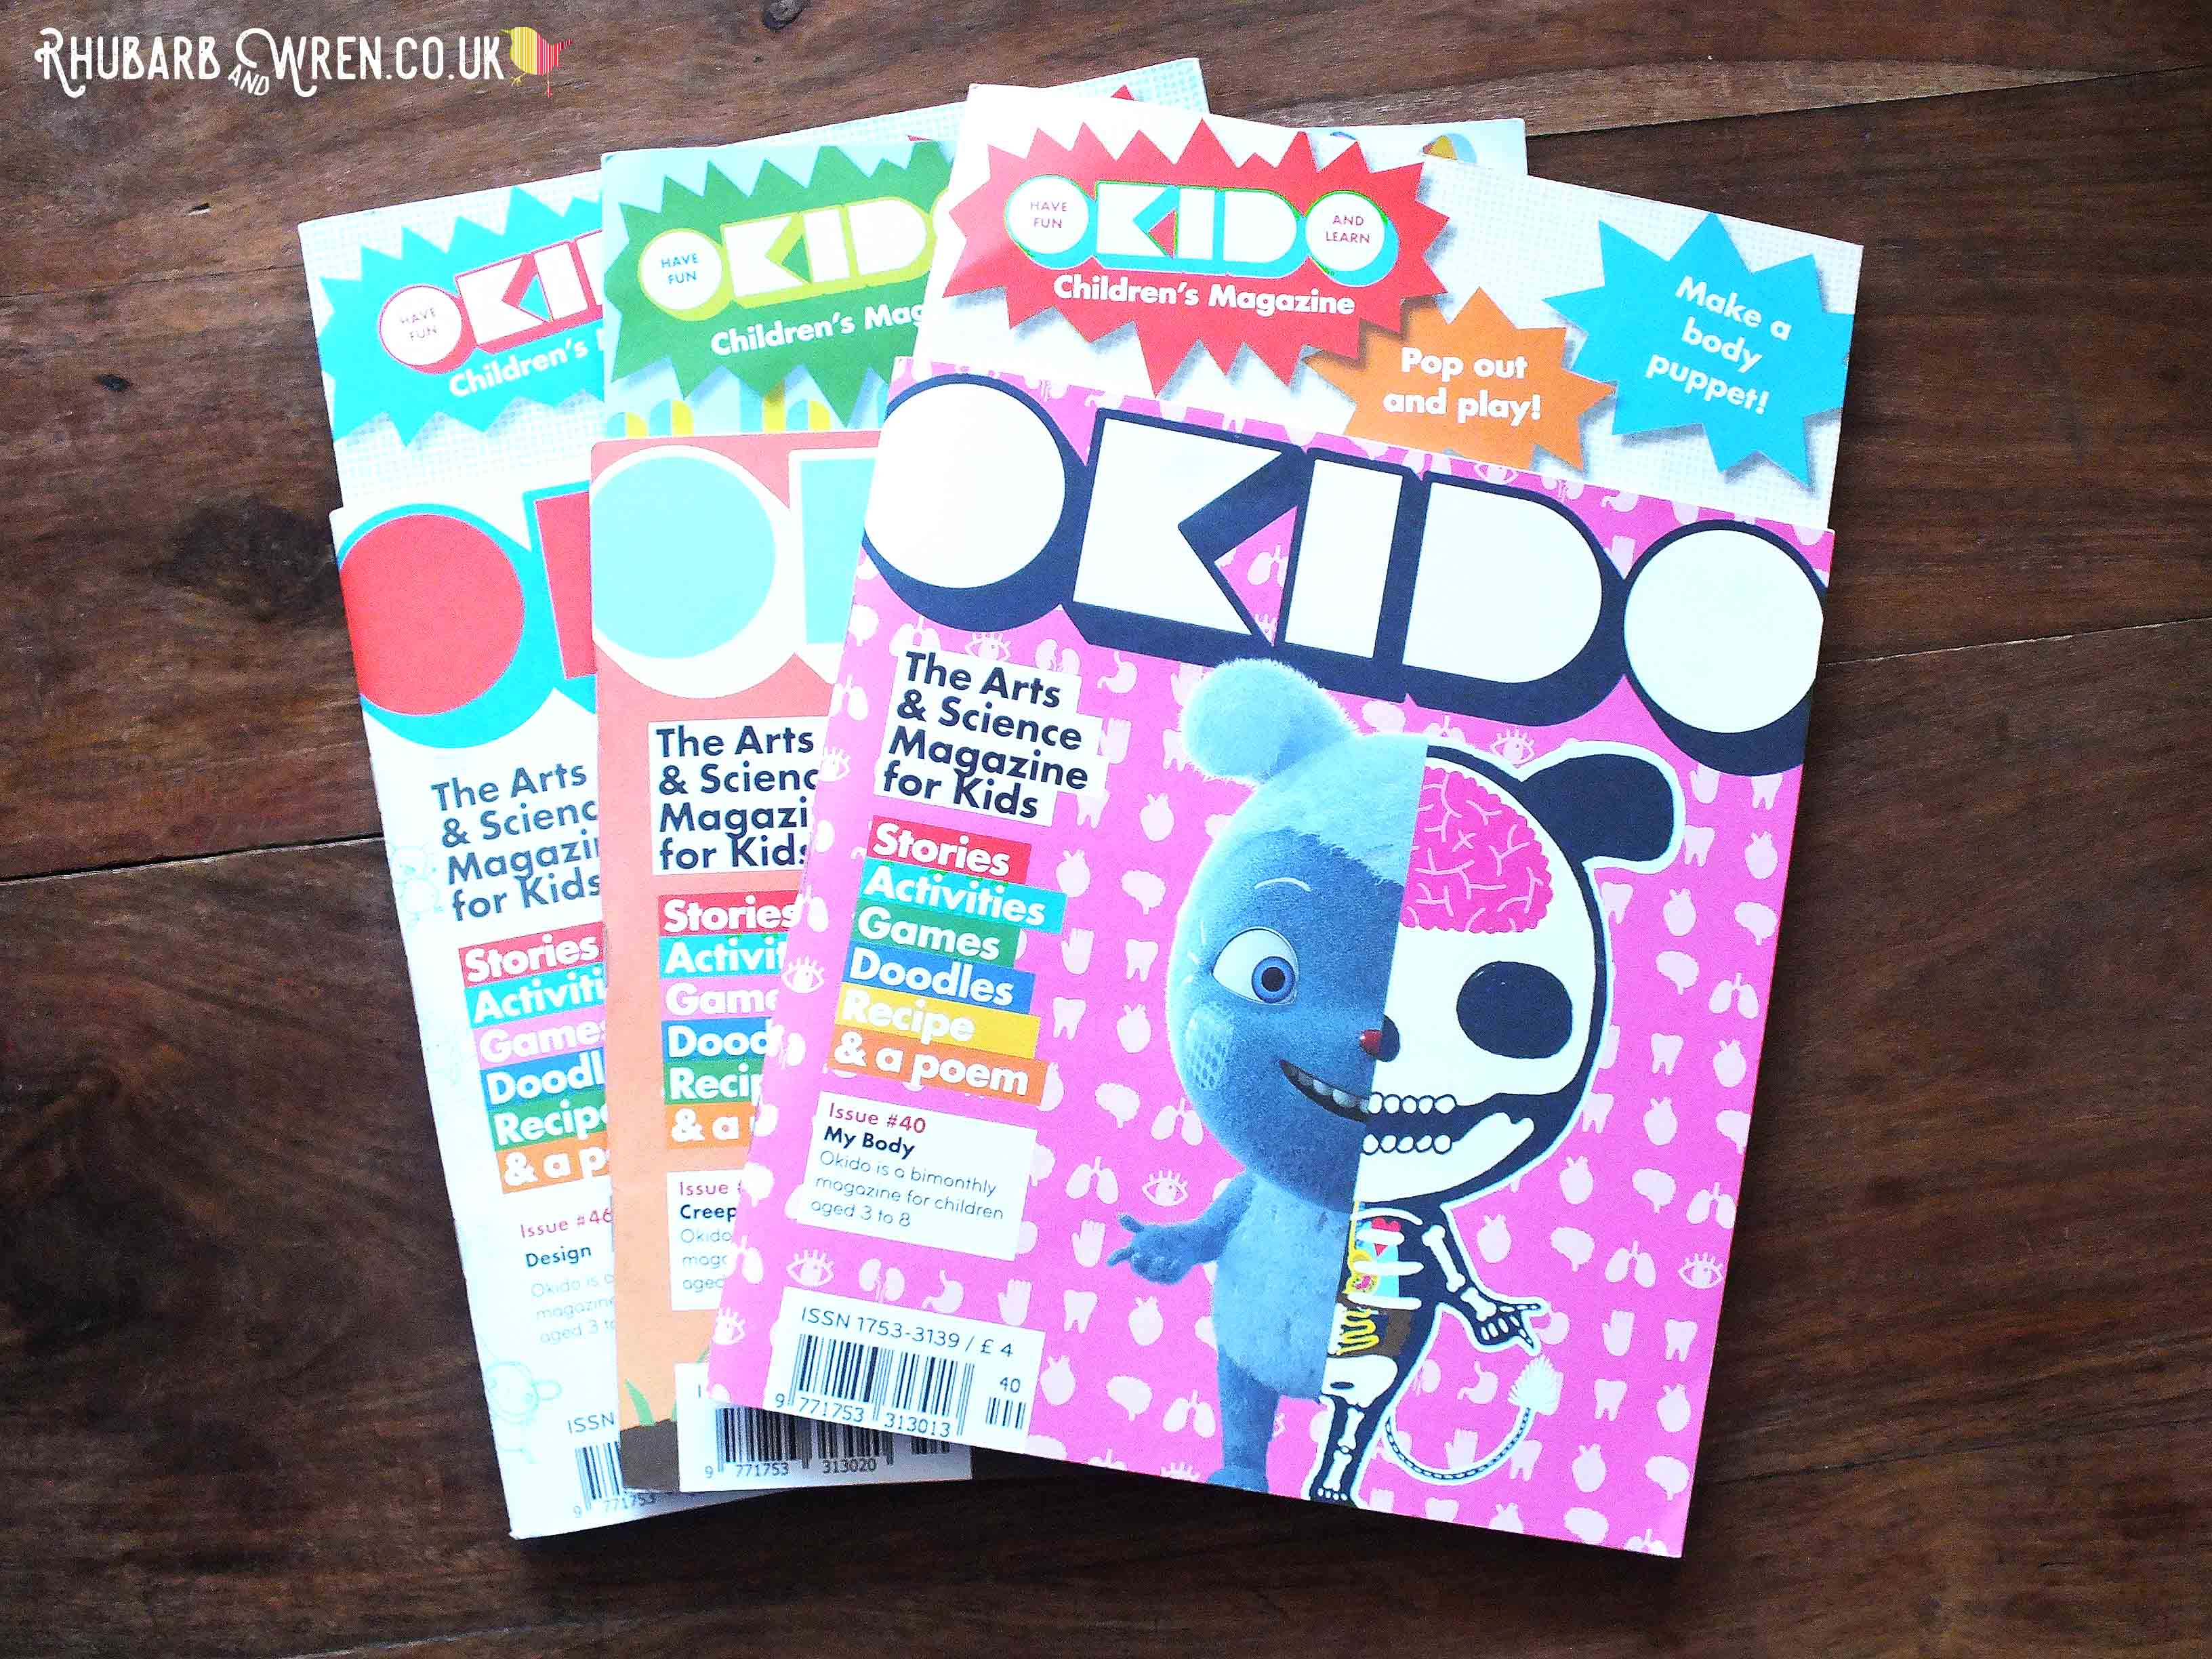 Issues of kids' arts and science magazine - Okido